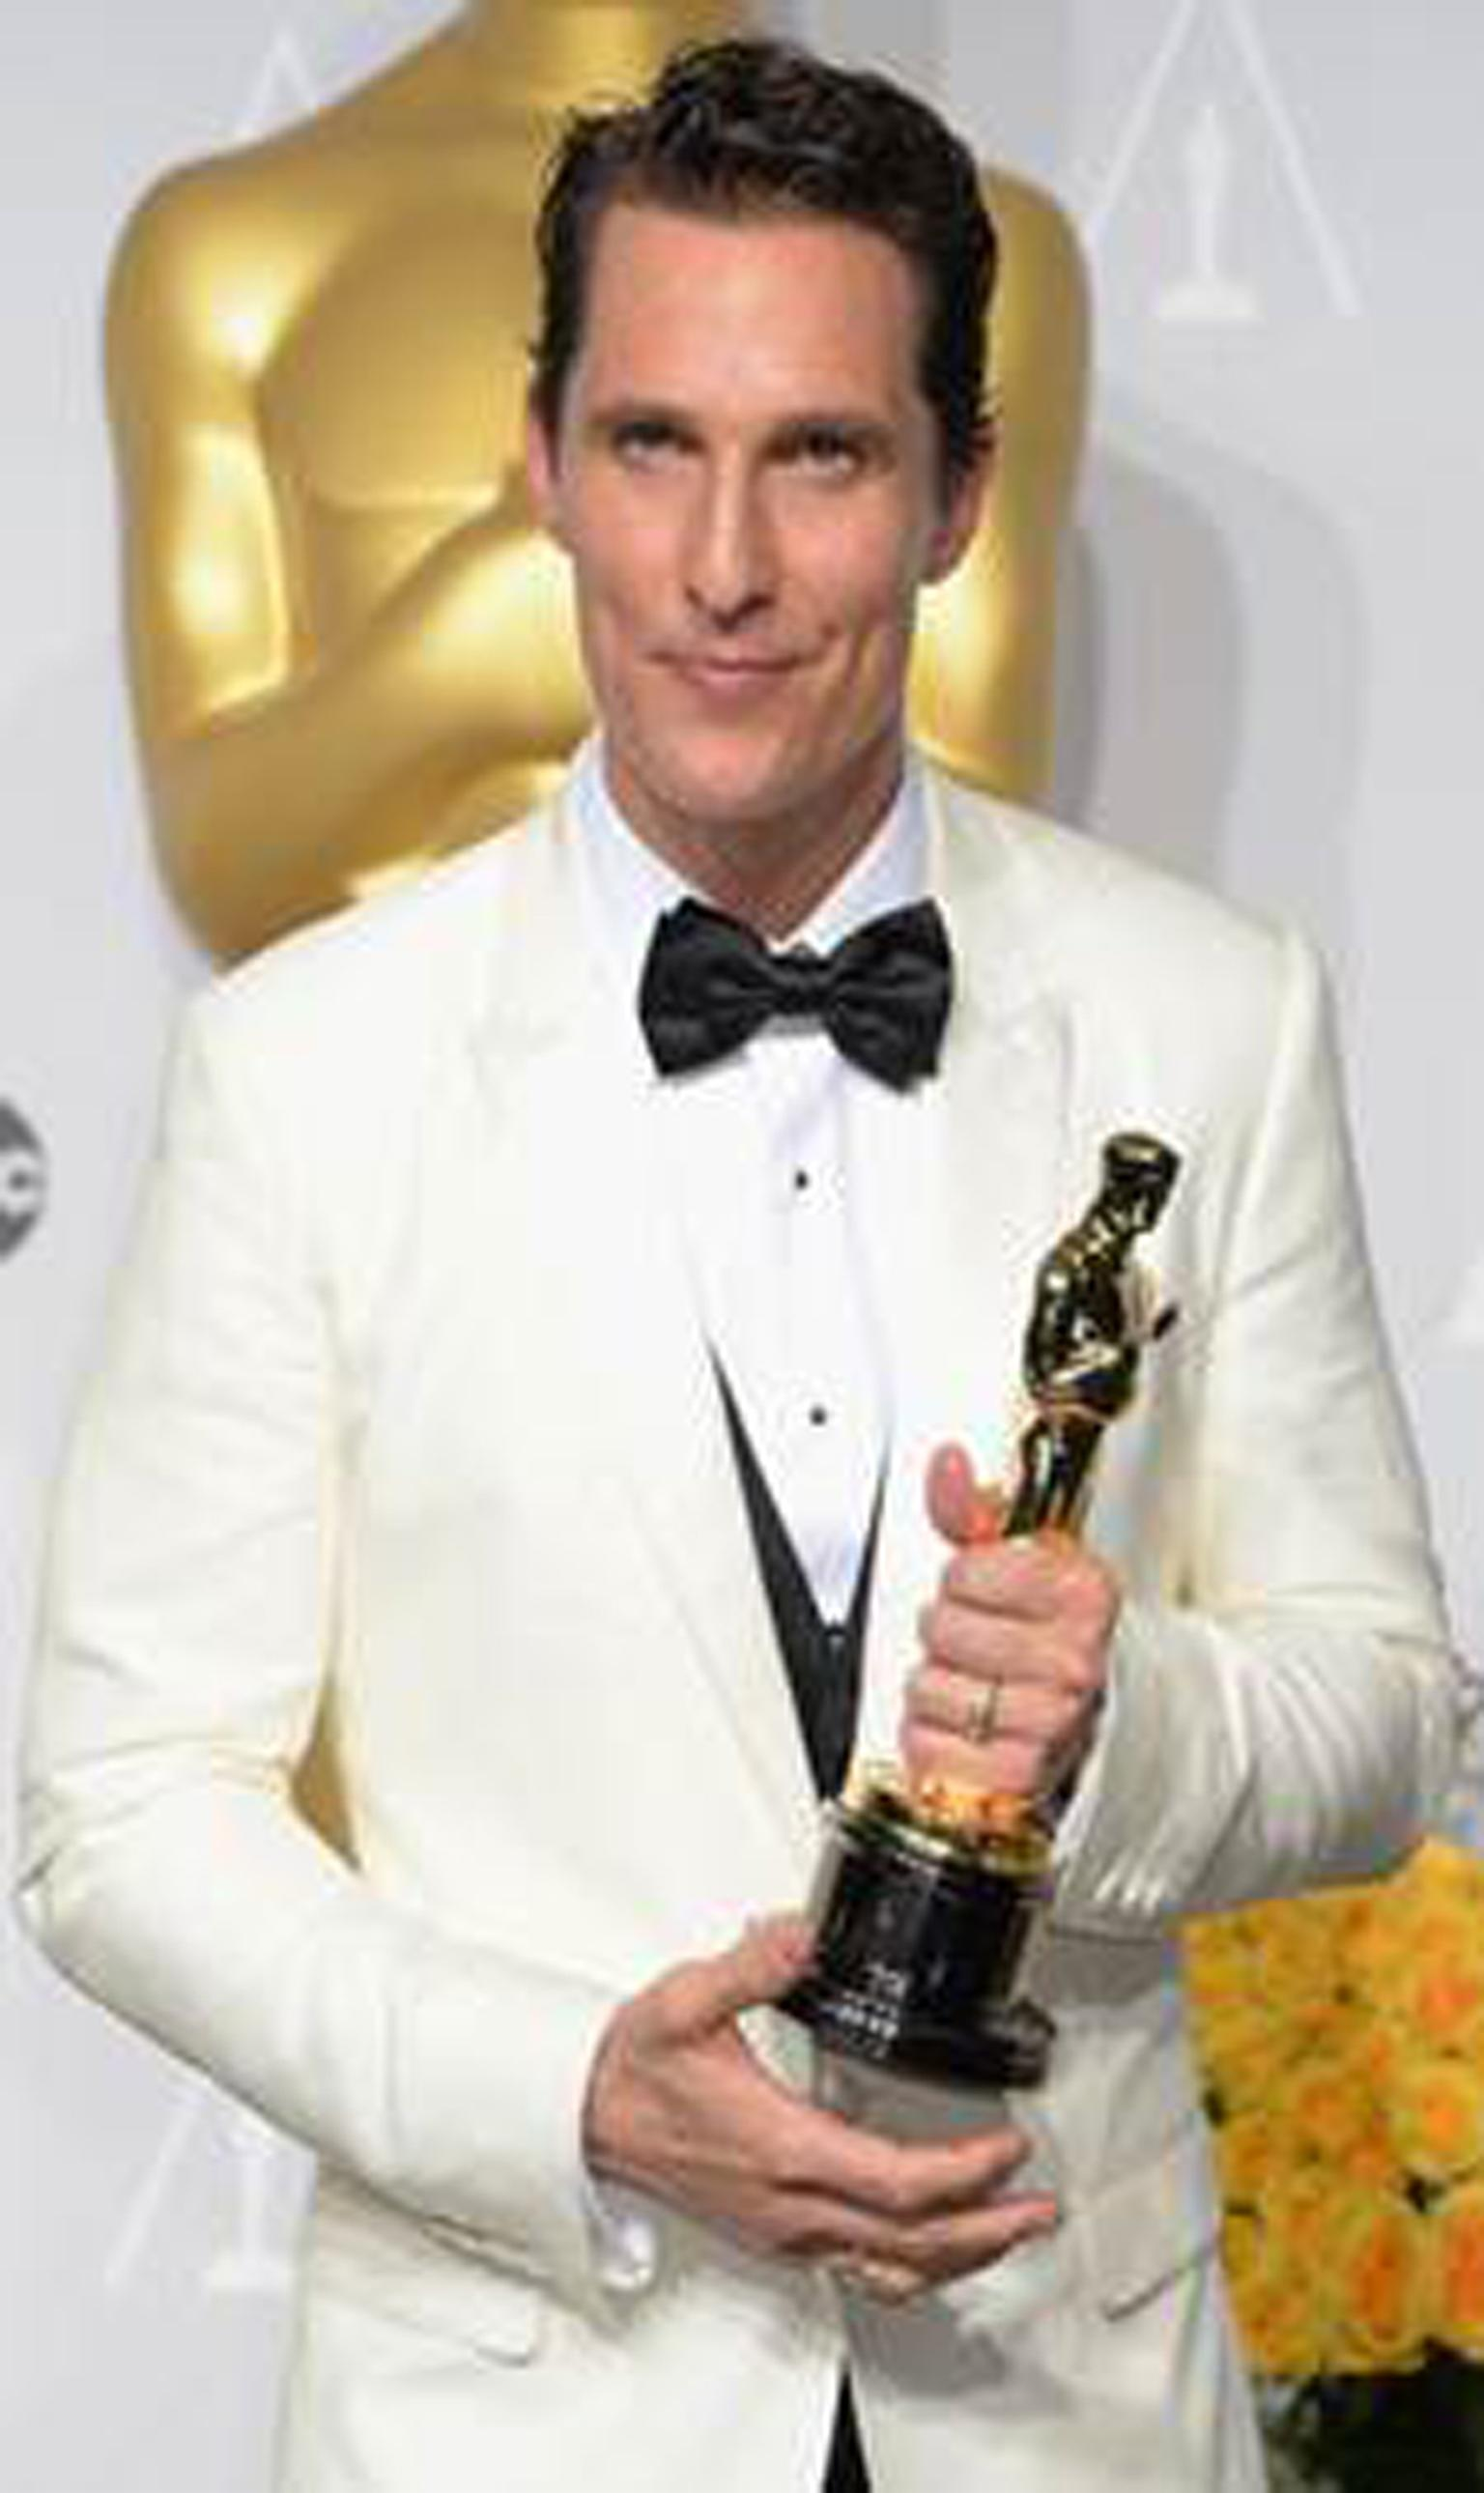 Academy Award Winner for Best Actor in a Leading Role, Matthew McConaughey selected Chopard's white gold L.U.C XP Tonneau timepiece featuring a white dial and black leather strap.